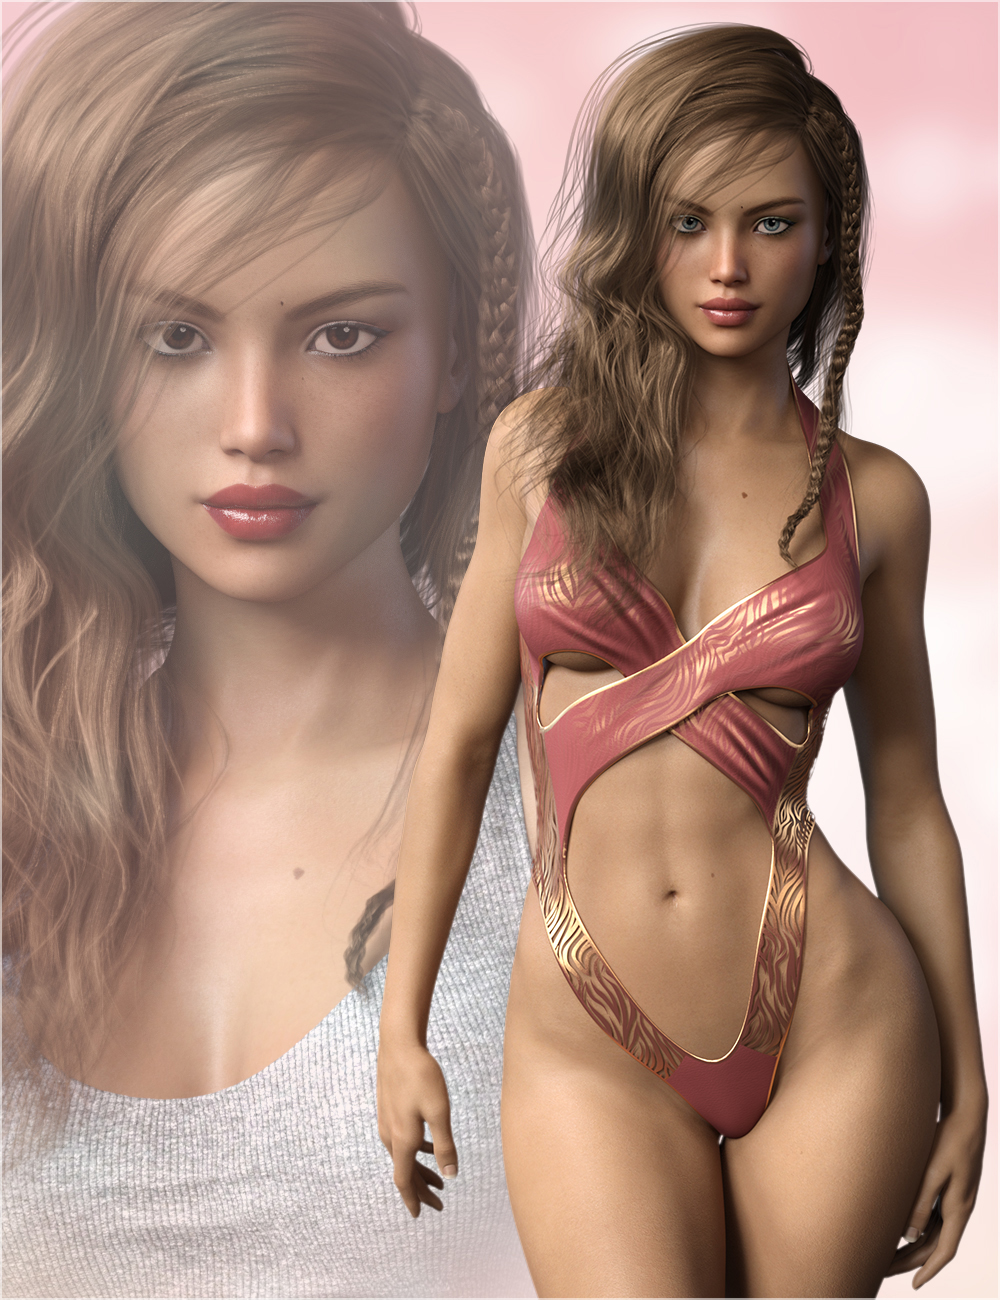 FWSA Caterina for Victoria 7 and Genesis 3 by Sabby